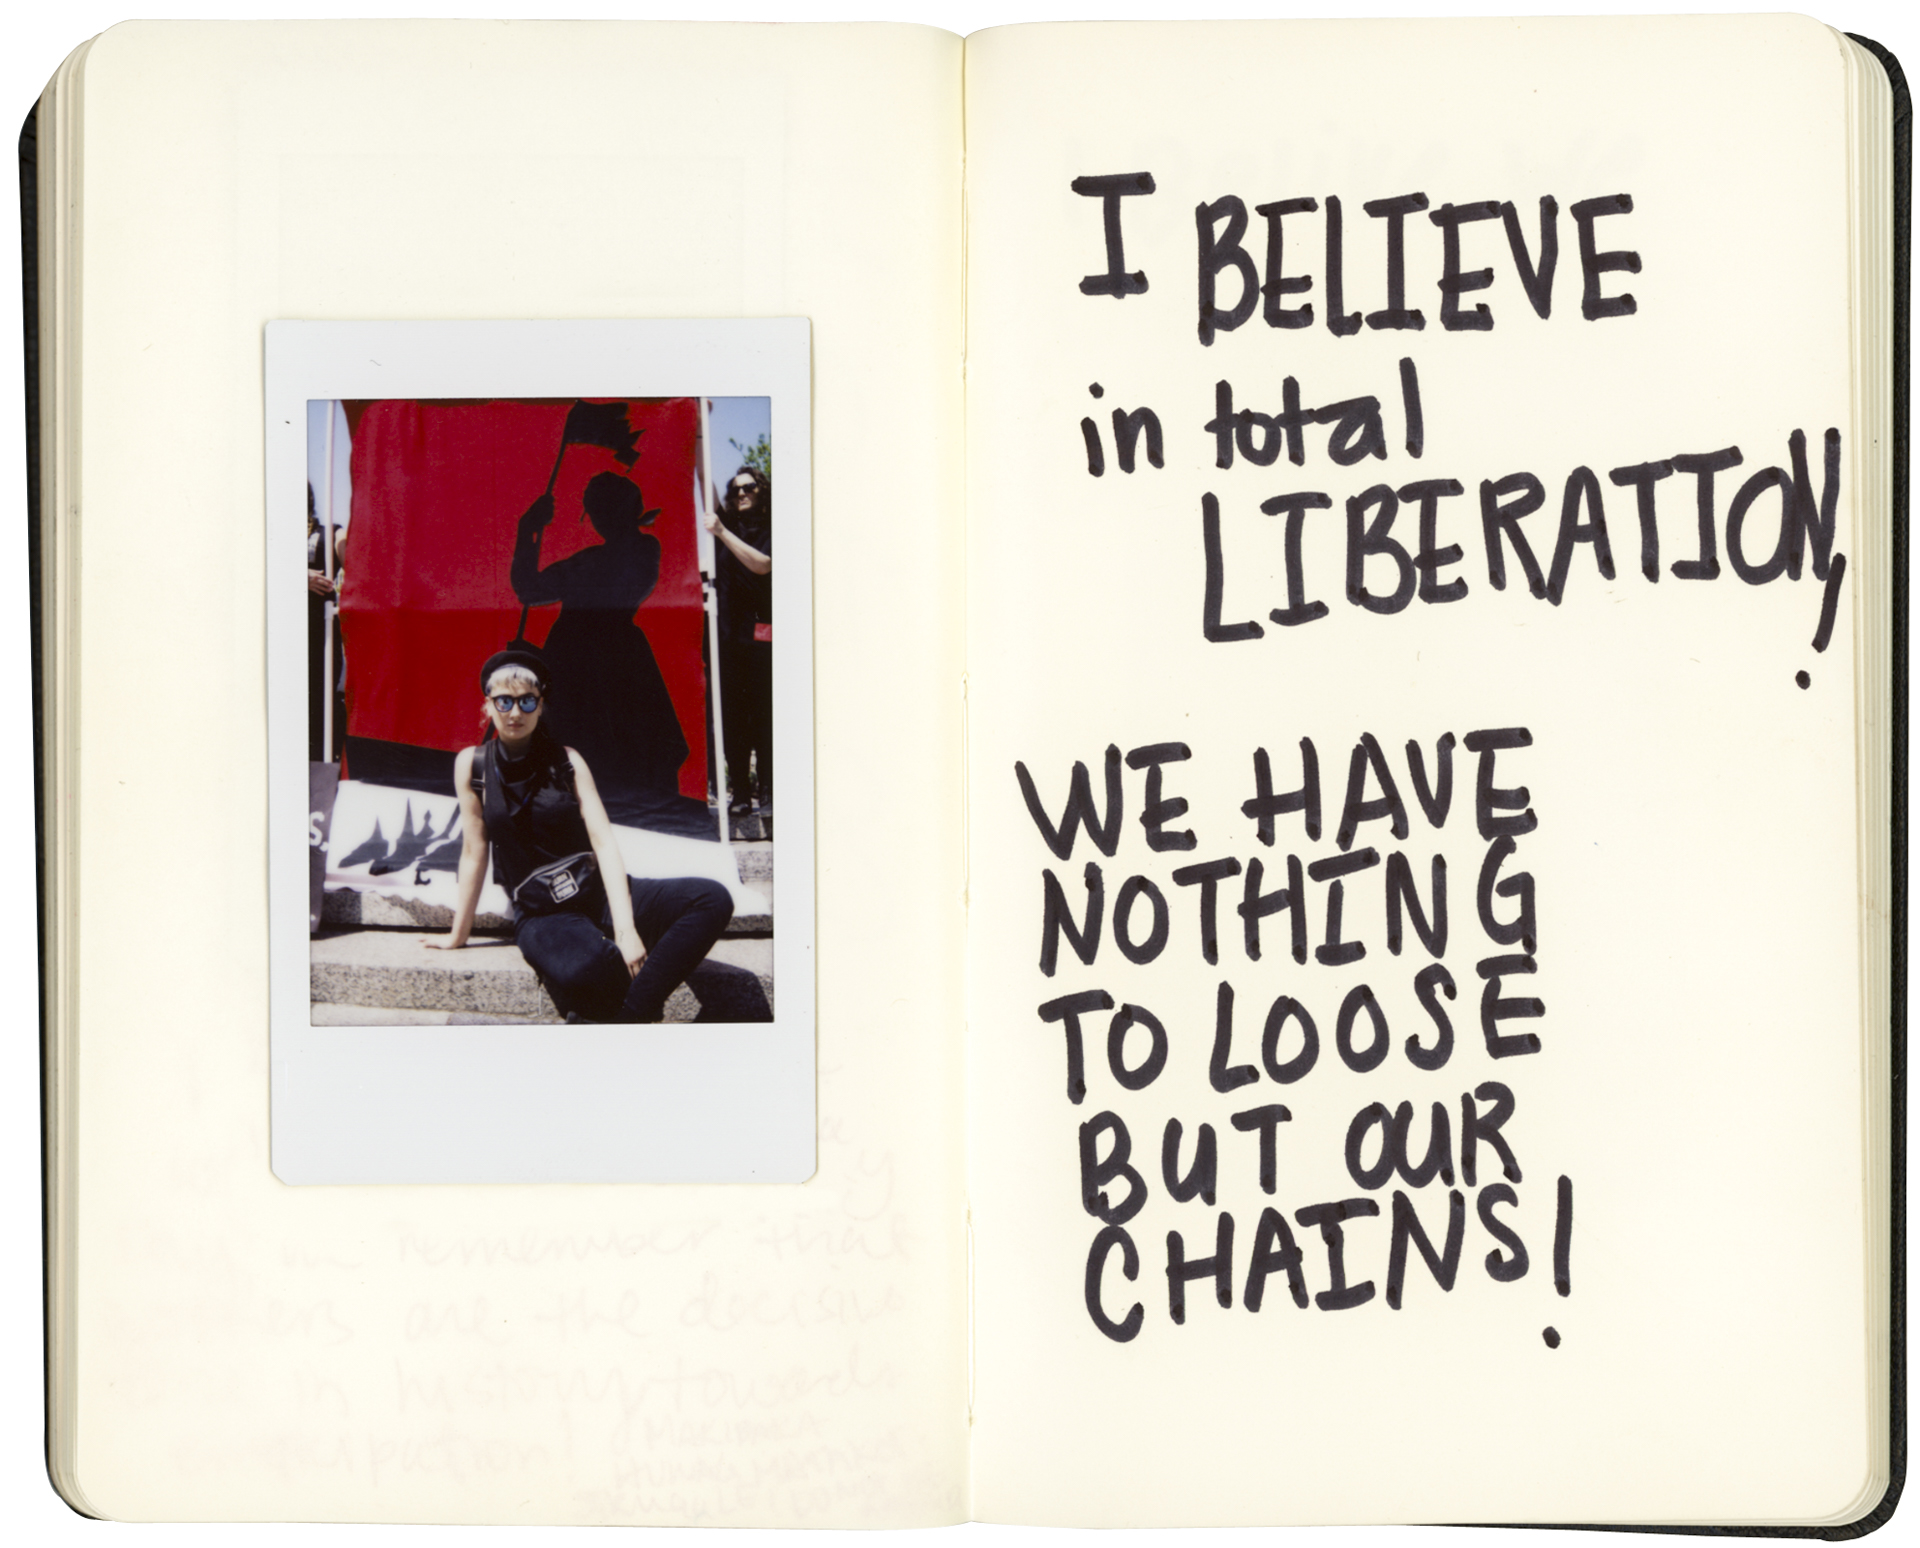 """01 May 2017 - Union Square, New York - May DayElektra KB, Brooklyn, artist""""I believe in total liberation! We Have nothing to loose but our chains!""""Credit: Cédric von NiederhäusernINFO:Notebook digitally altered to fit layout dimensions"""